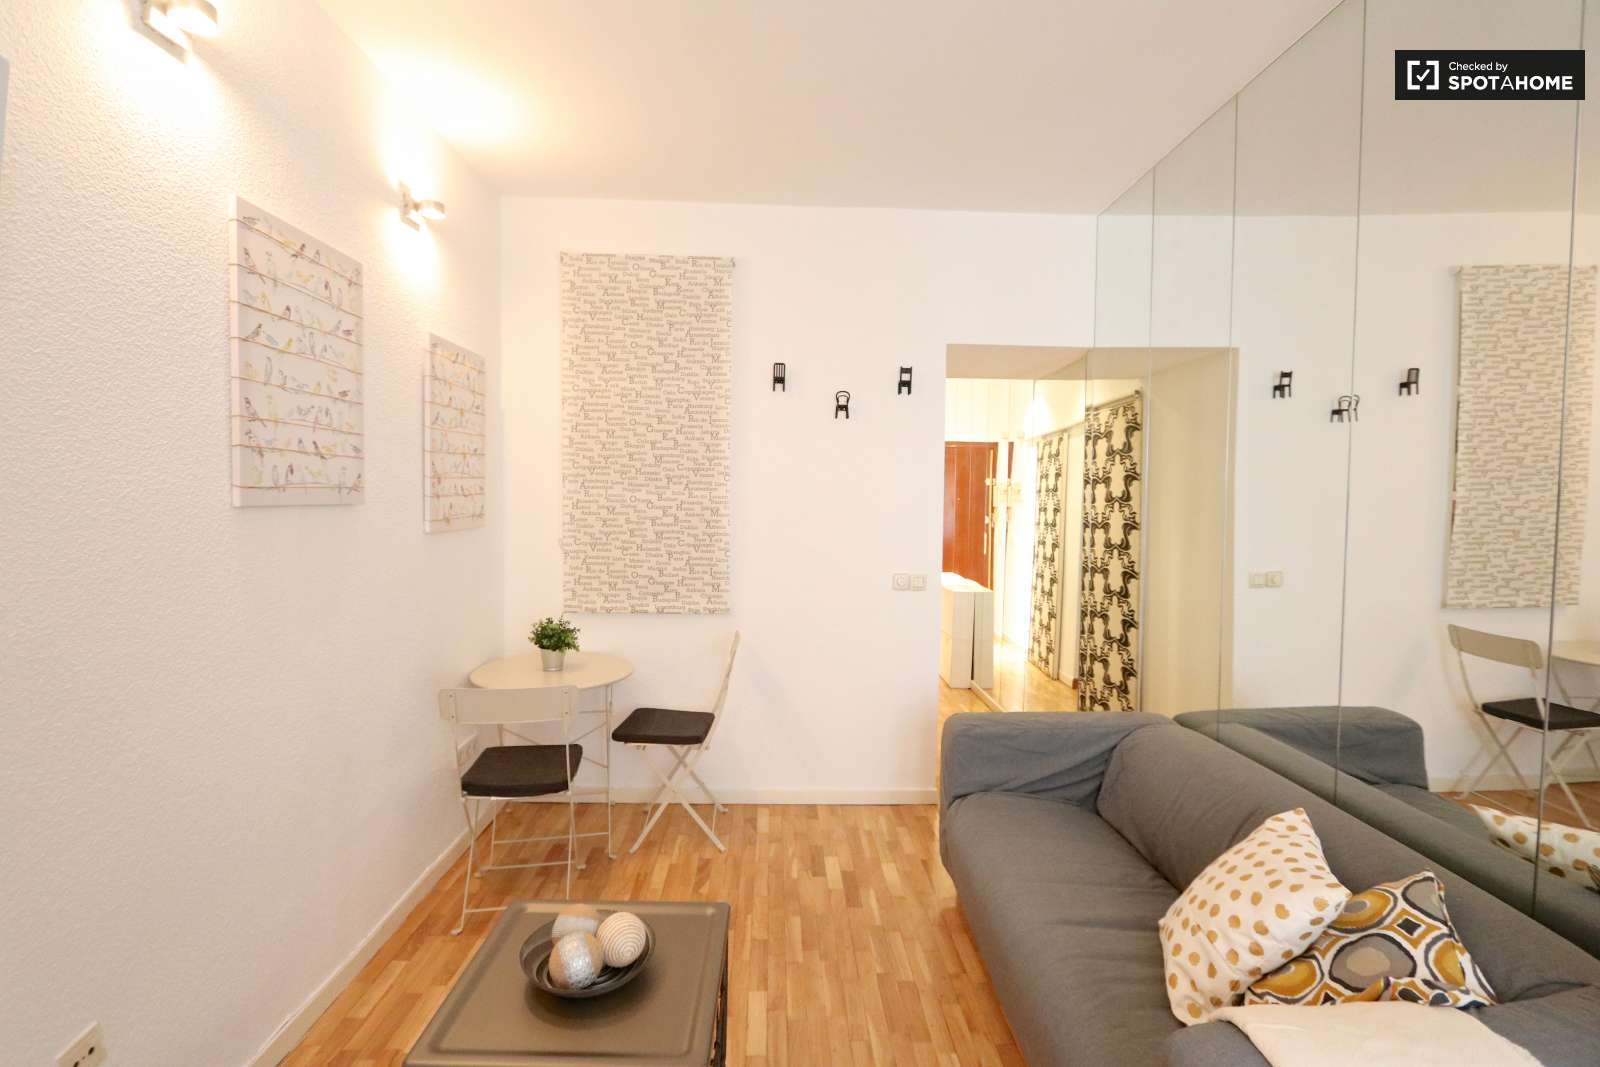 Modern 1 bedroom apartment for rent in almagro madrid ref 275319 spotahome